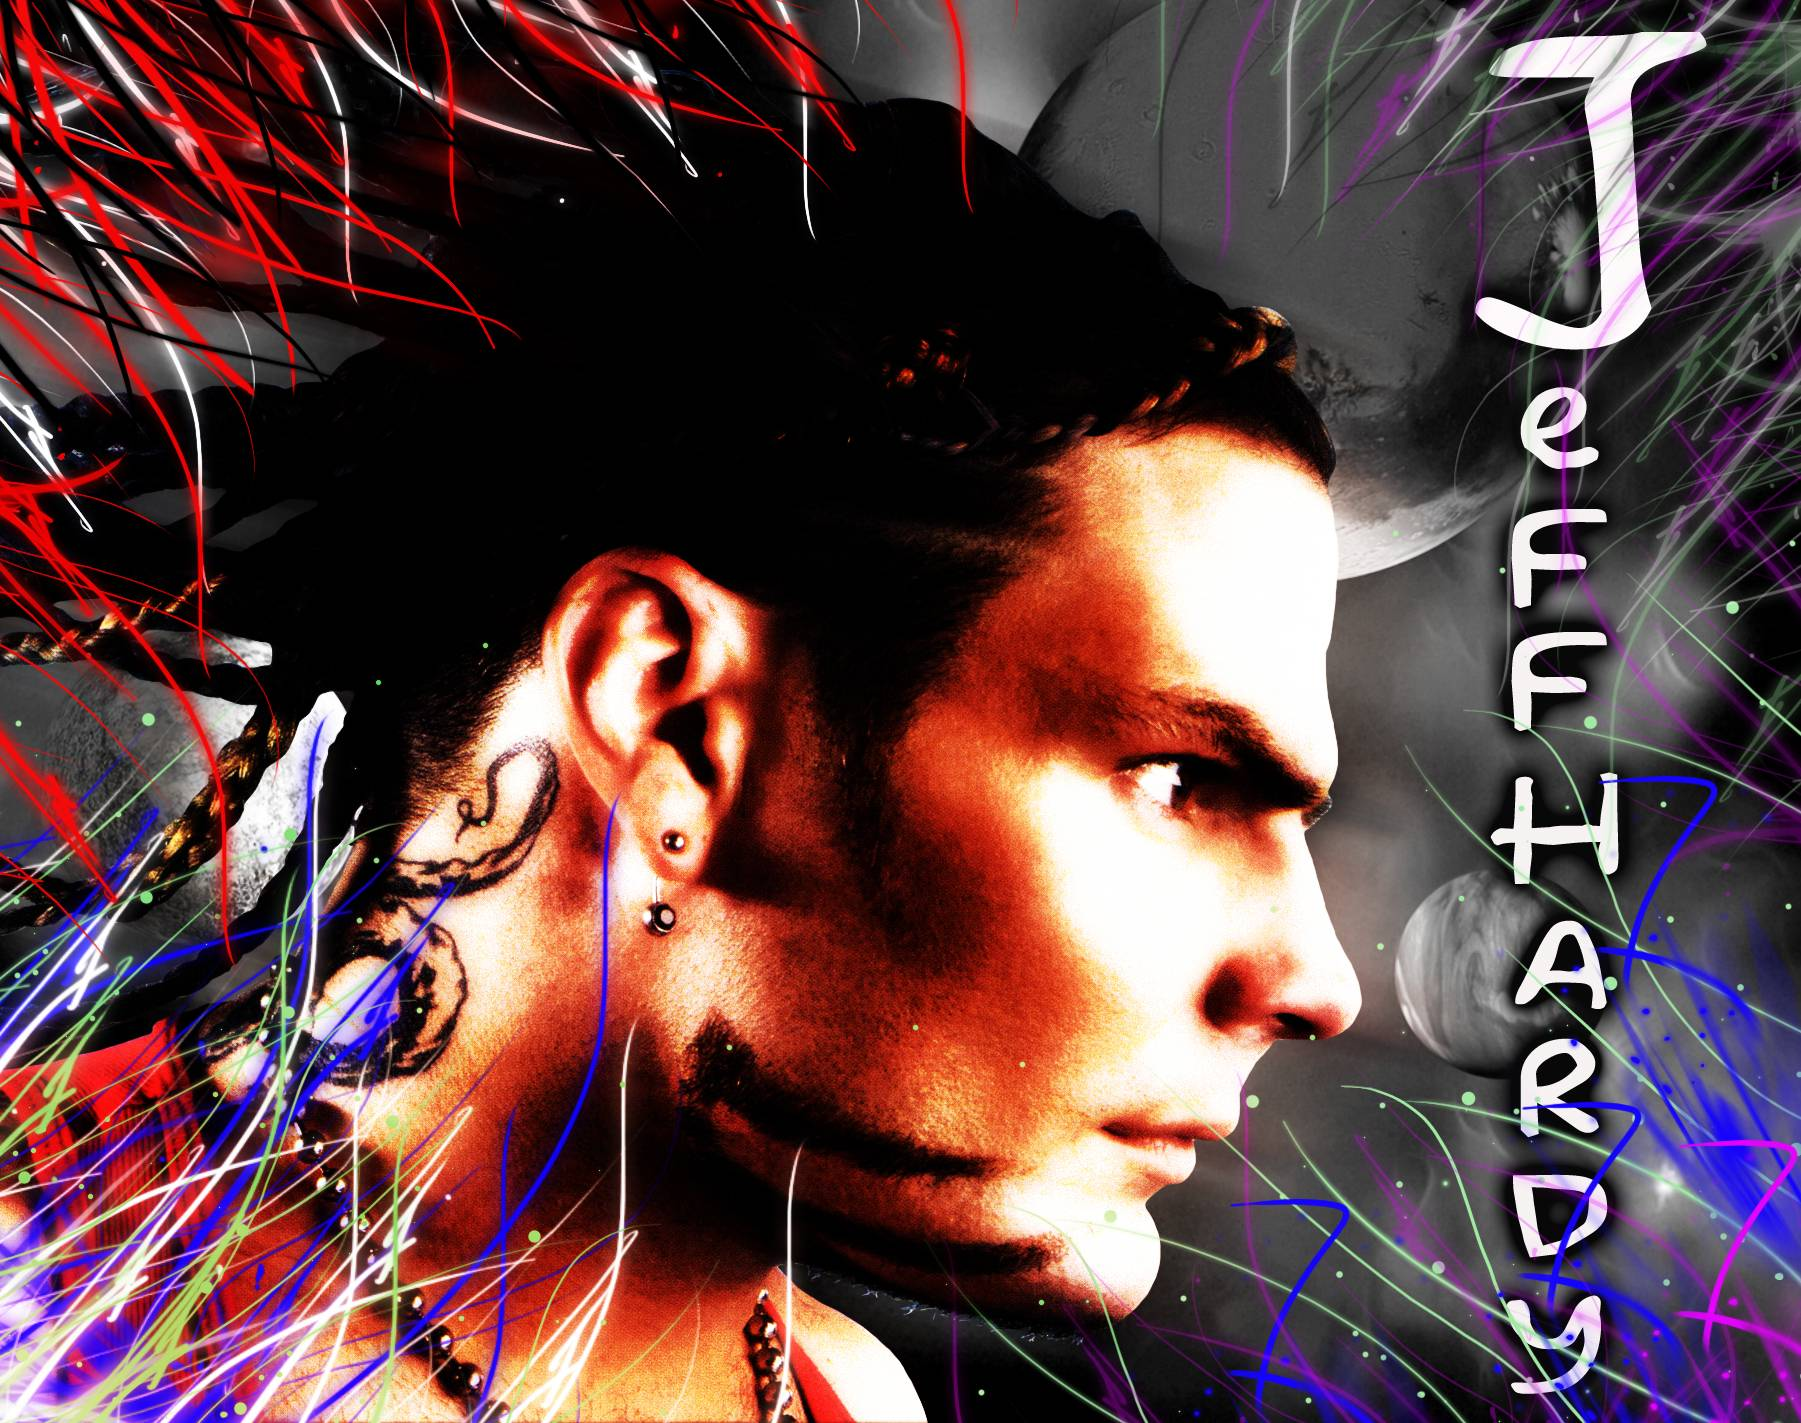 Jeff Hardy Hd Face Wallpapers Pictures to pin